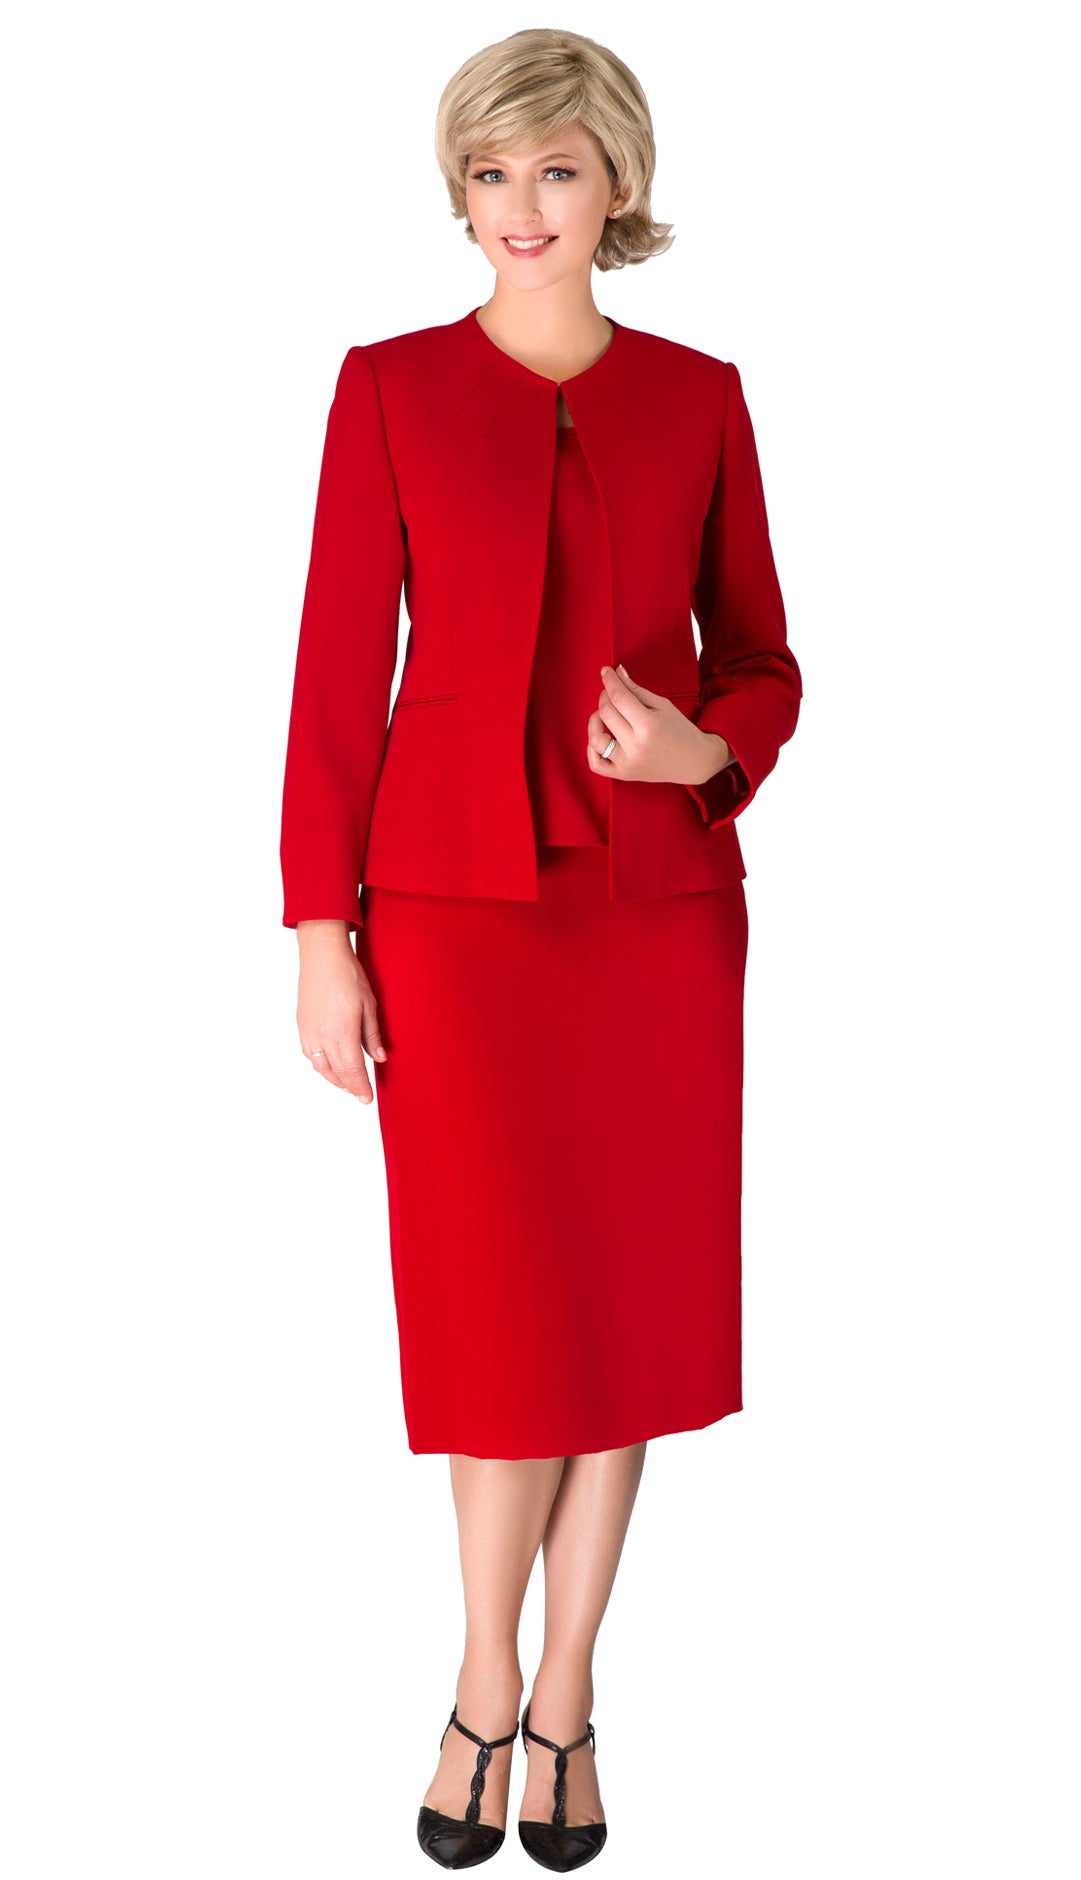 Giovanna Usher Suit S0721-Red - Church Suits For Less